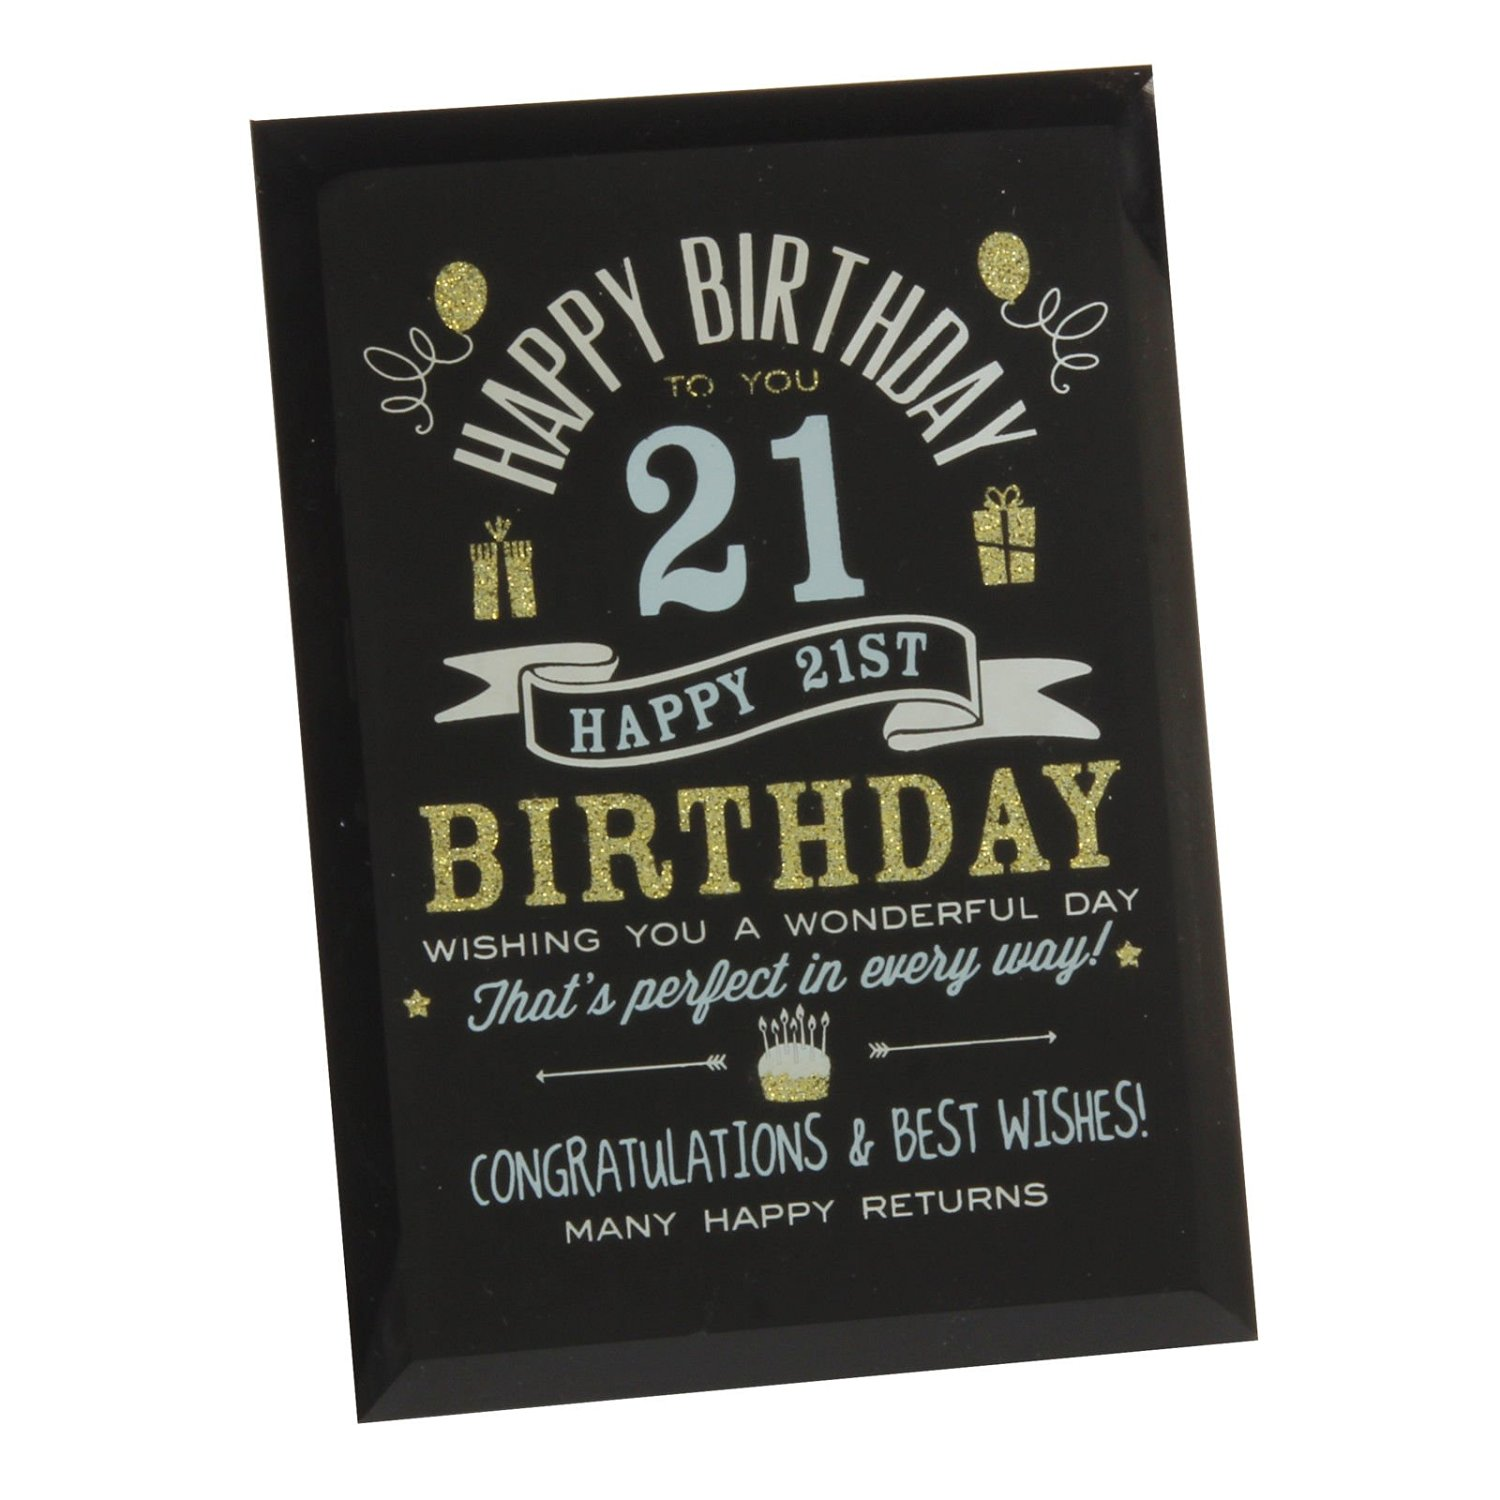 Get Quotations 21St Birthday Gift Ideas Glass Plaque For Him Her Friends Grandparents